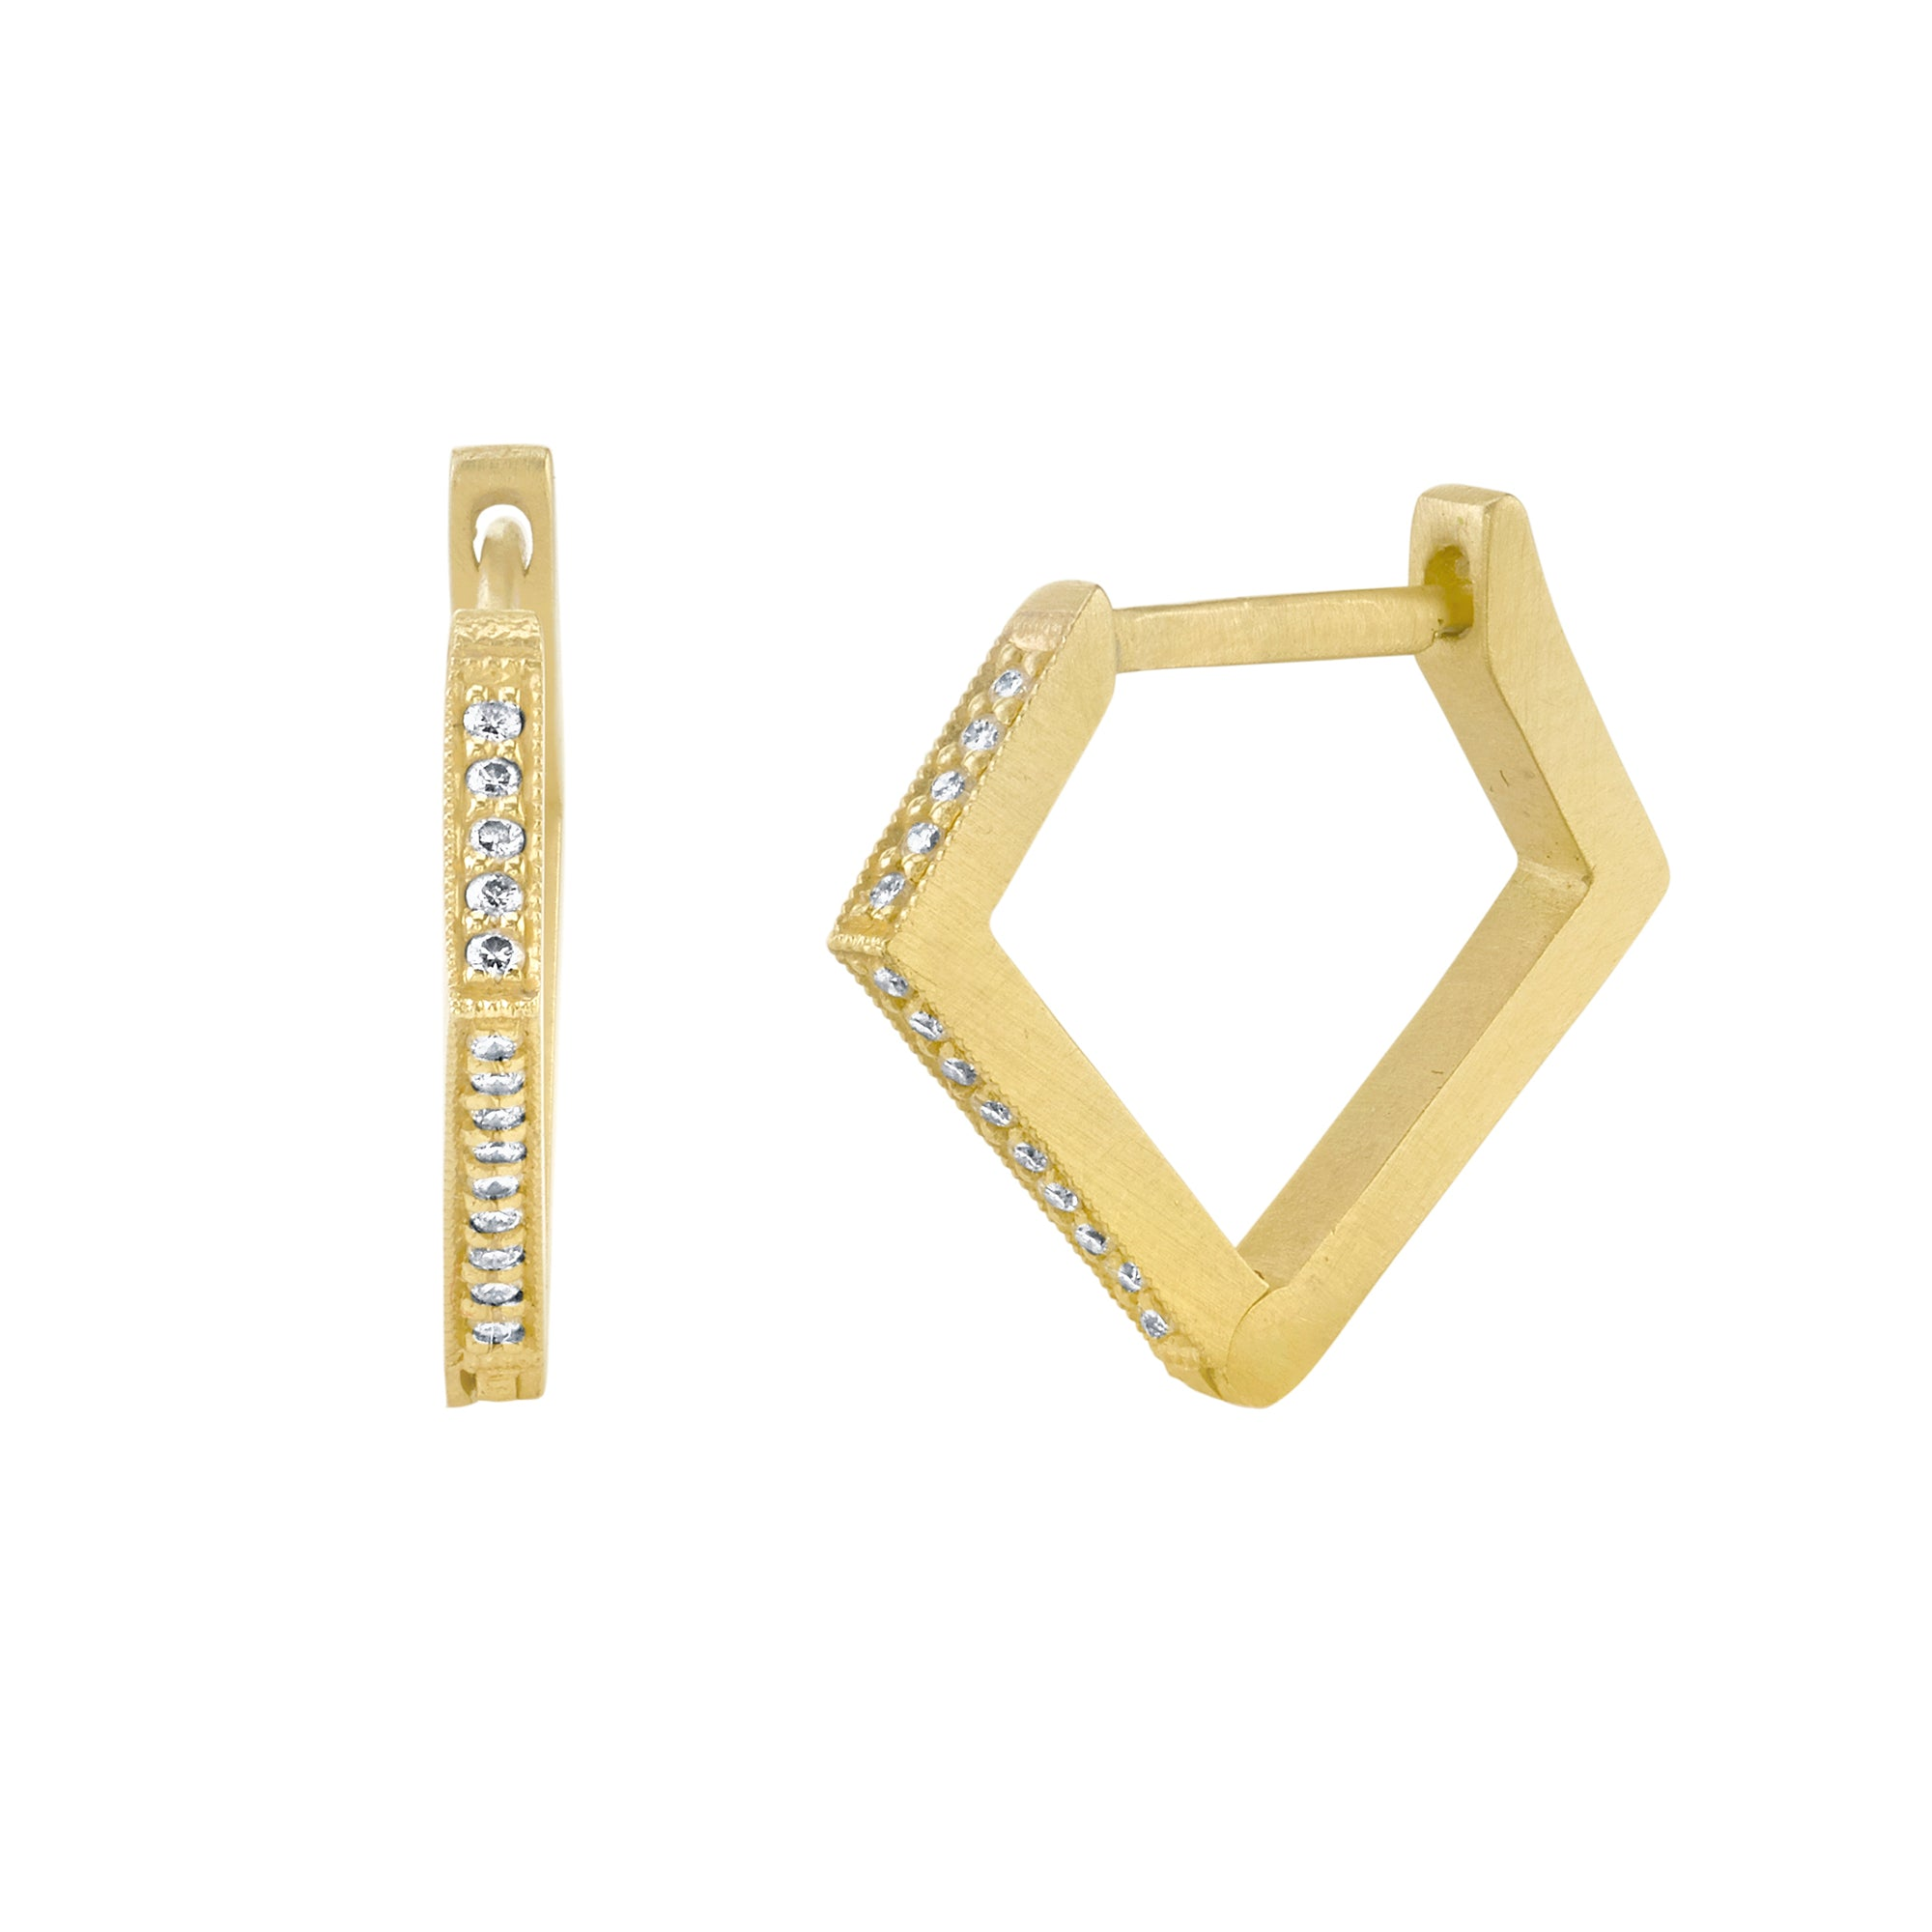 Diamond Geometric Huggies by Lizzie Mandler for Broken English Jewelry